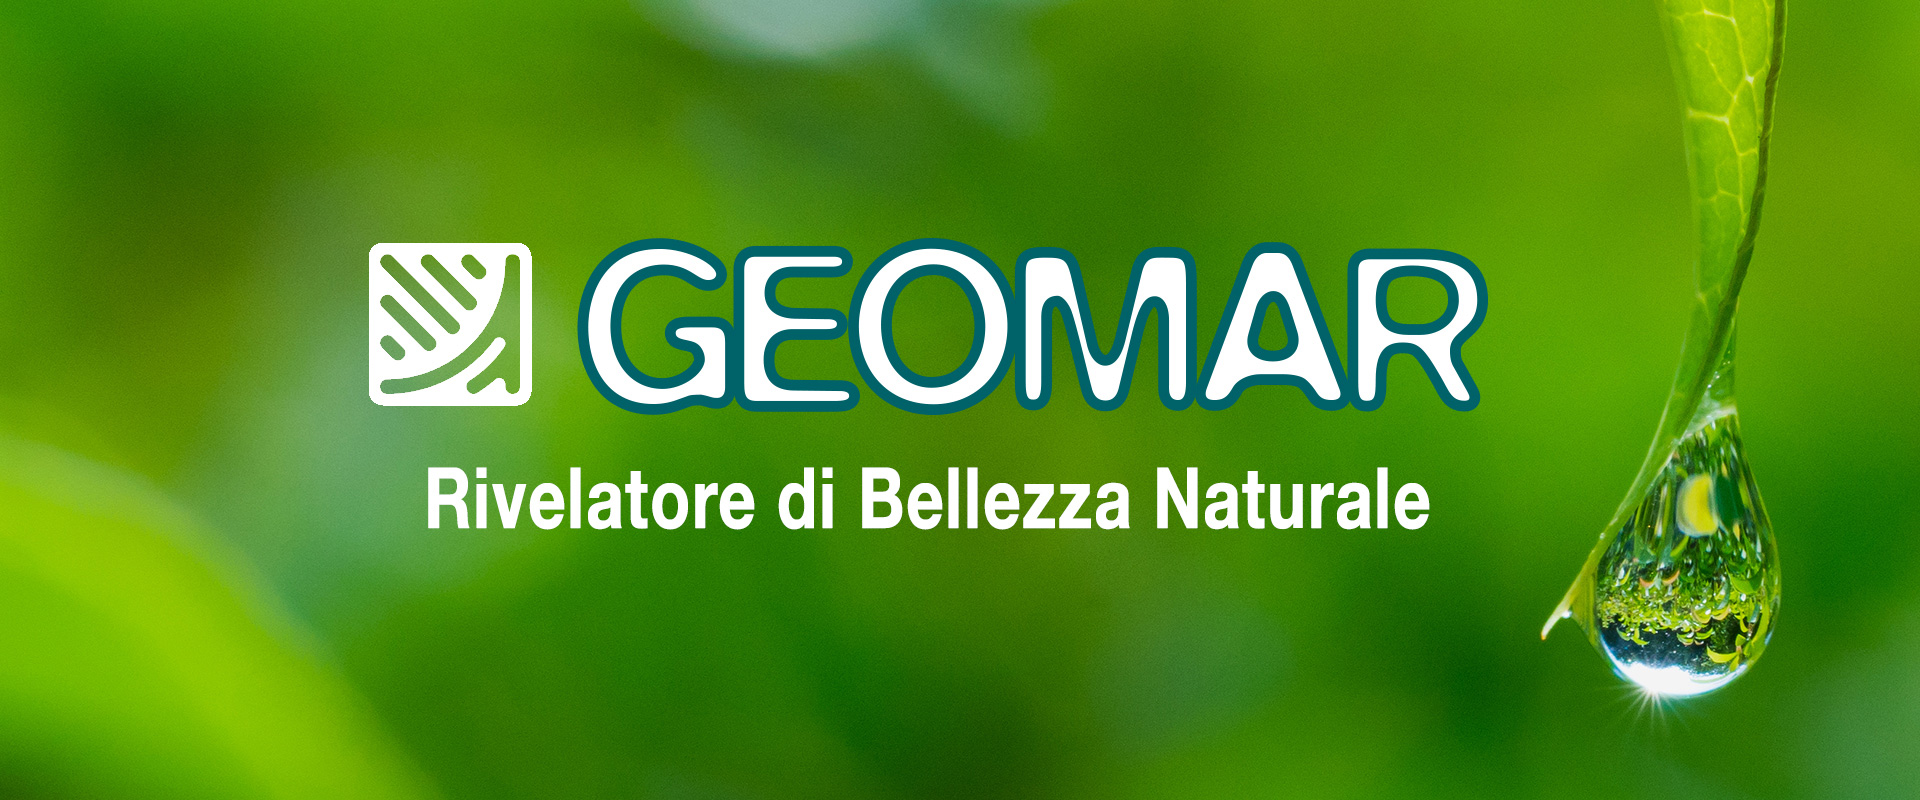 Geomar - Rivelatore di bellezza naturale